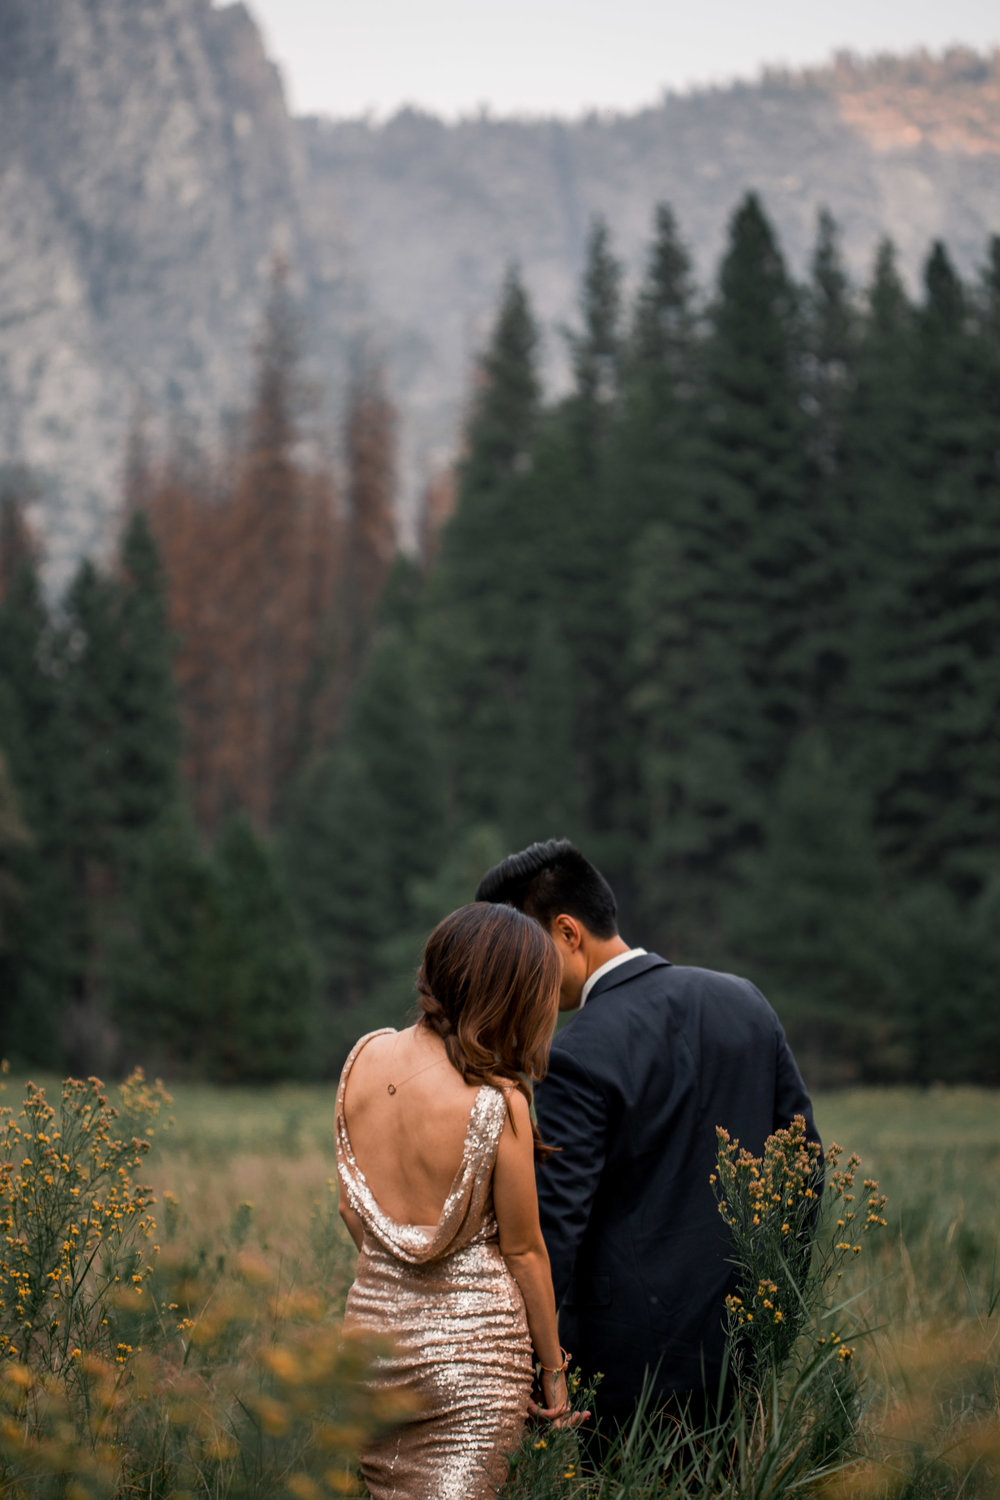 nicole-daacke-photography-yosemite-national-park-adventurous-engagement-session-half-dome-engagement-session-anniversary-photographer-yosemite-elopement-photographer-yosemite-intimate-wedding-photography-9.jpg